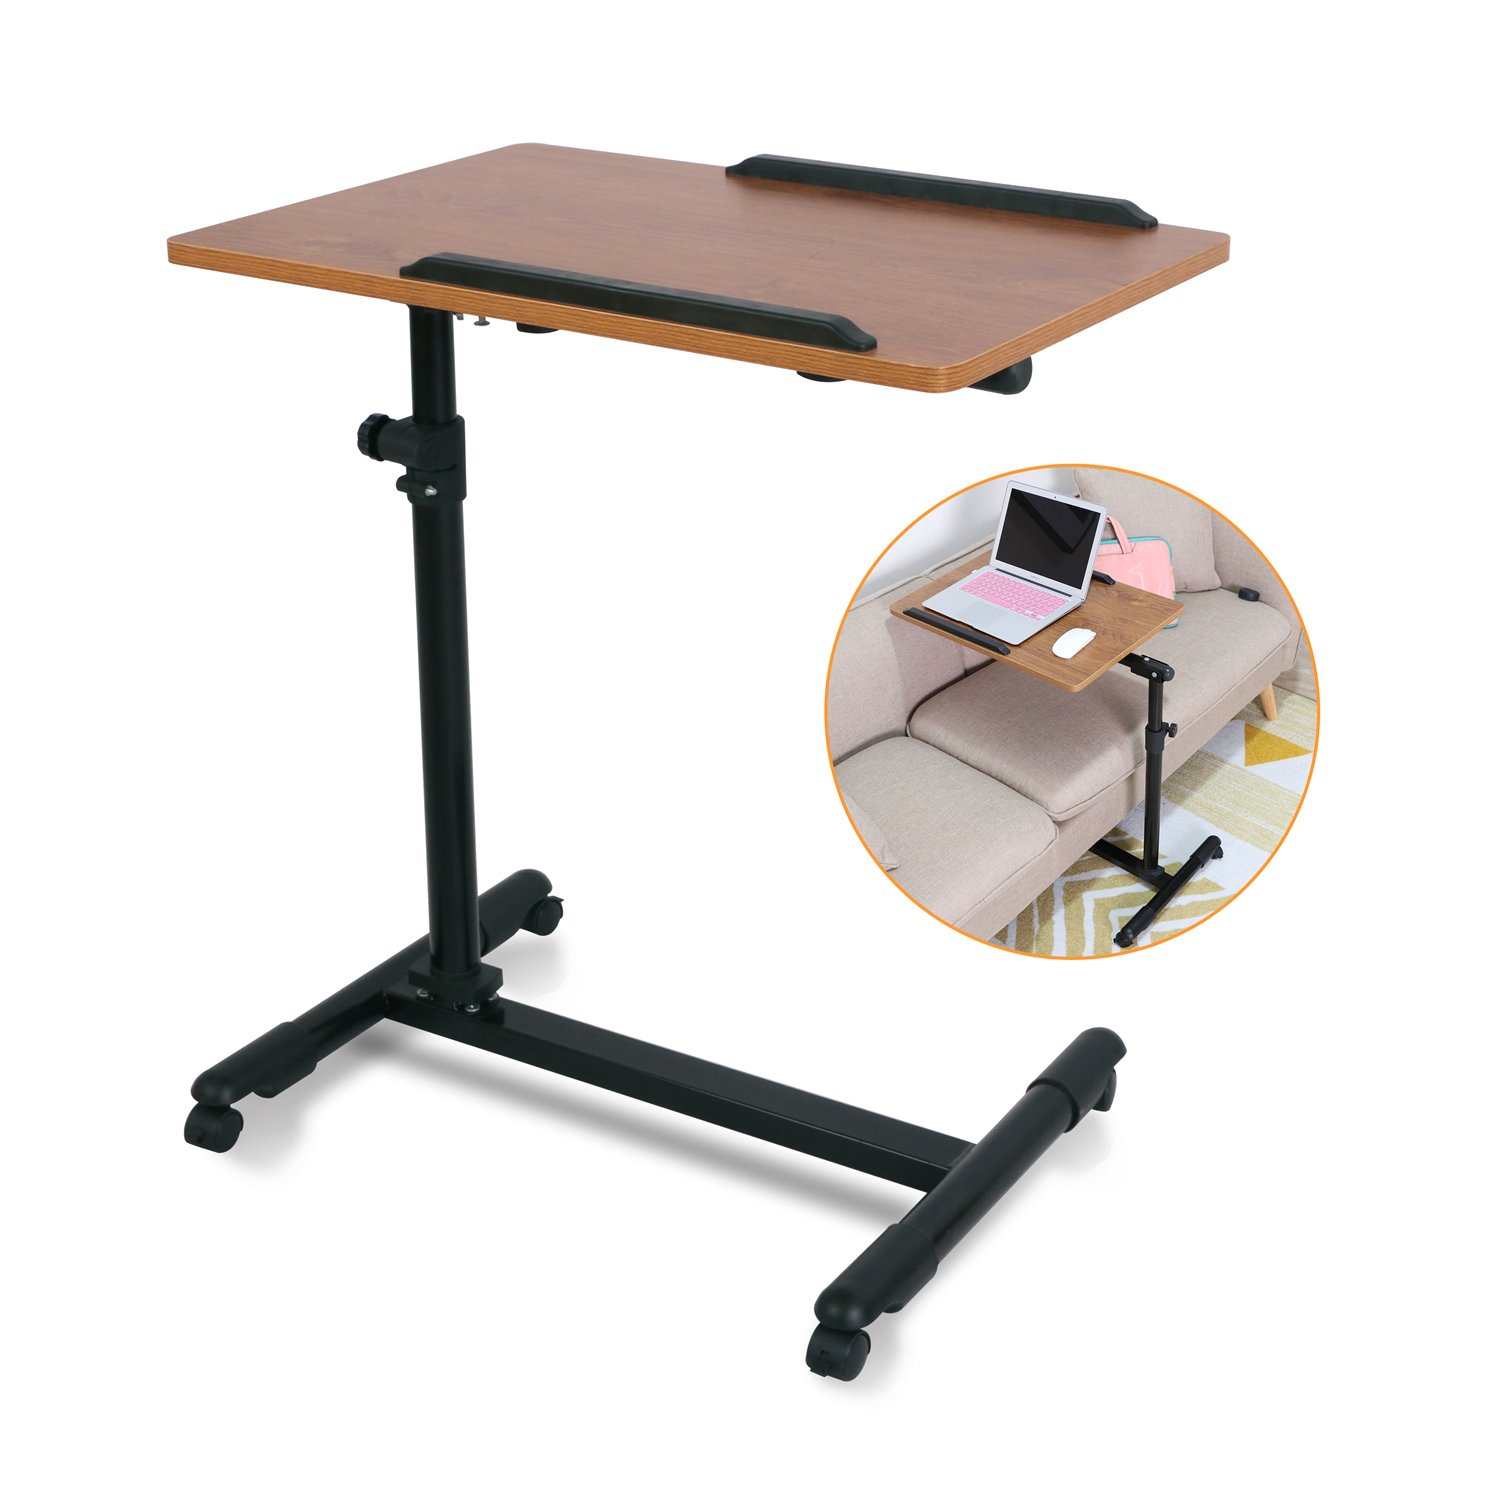 Ebuynar Adjustable Overbed Table Laptop Cart with Wheels (Updated,Dark Brown)